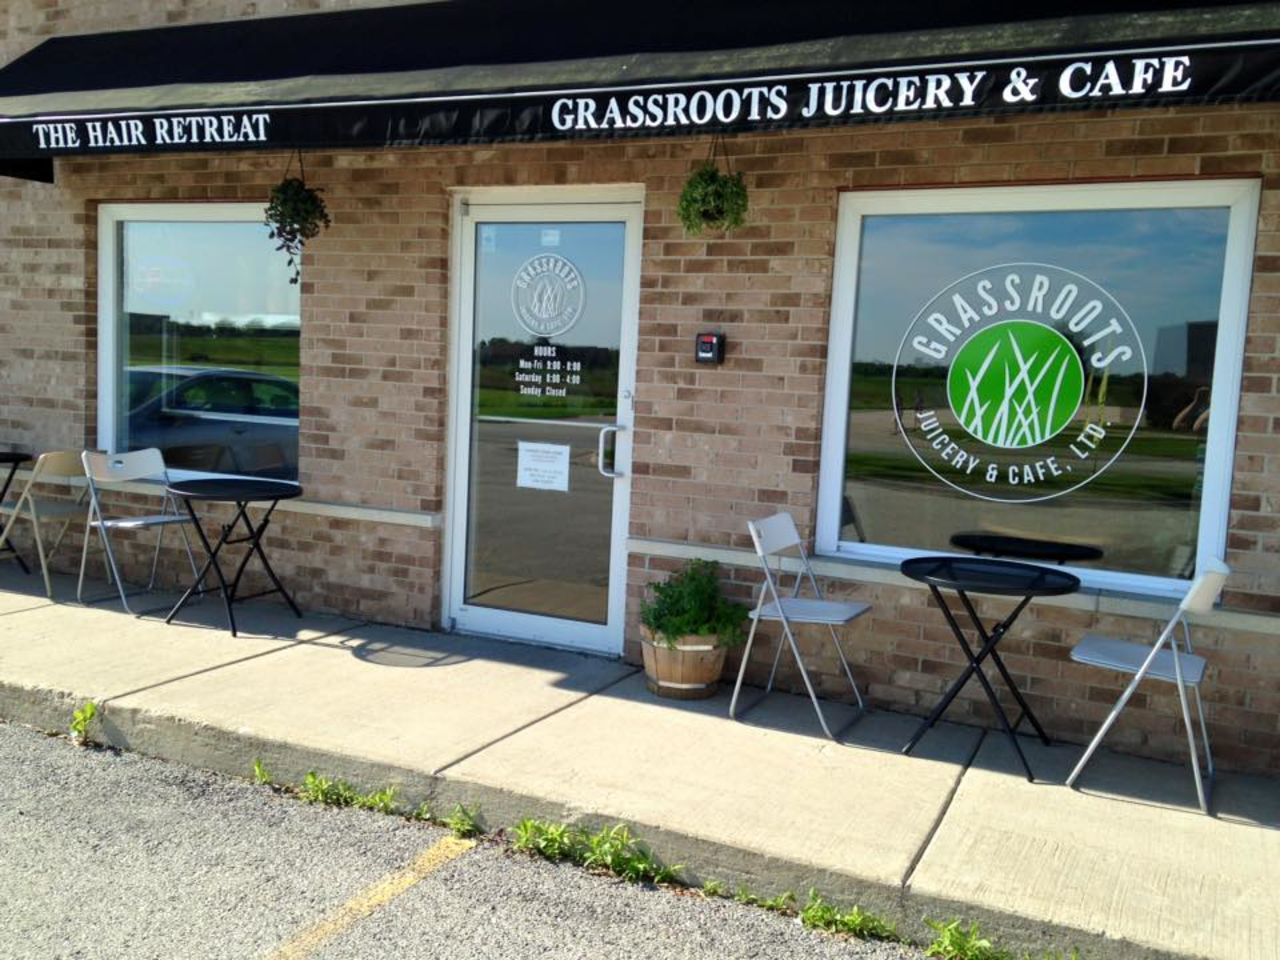 A photo of Grassroots Juicery & Cafe